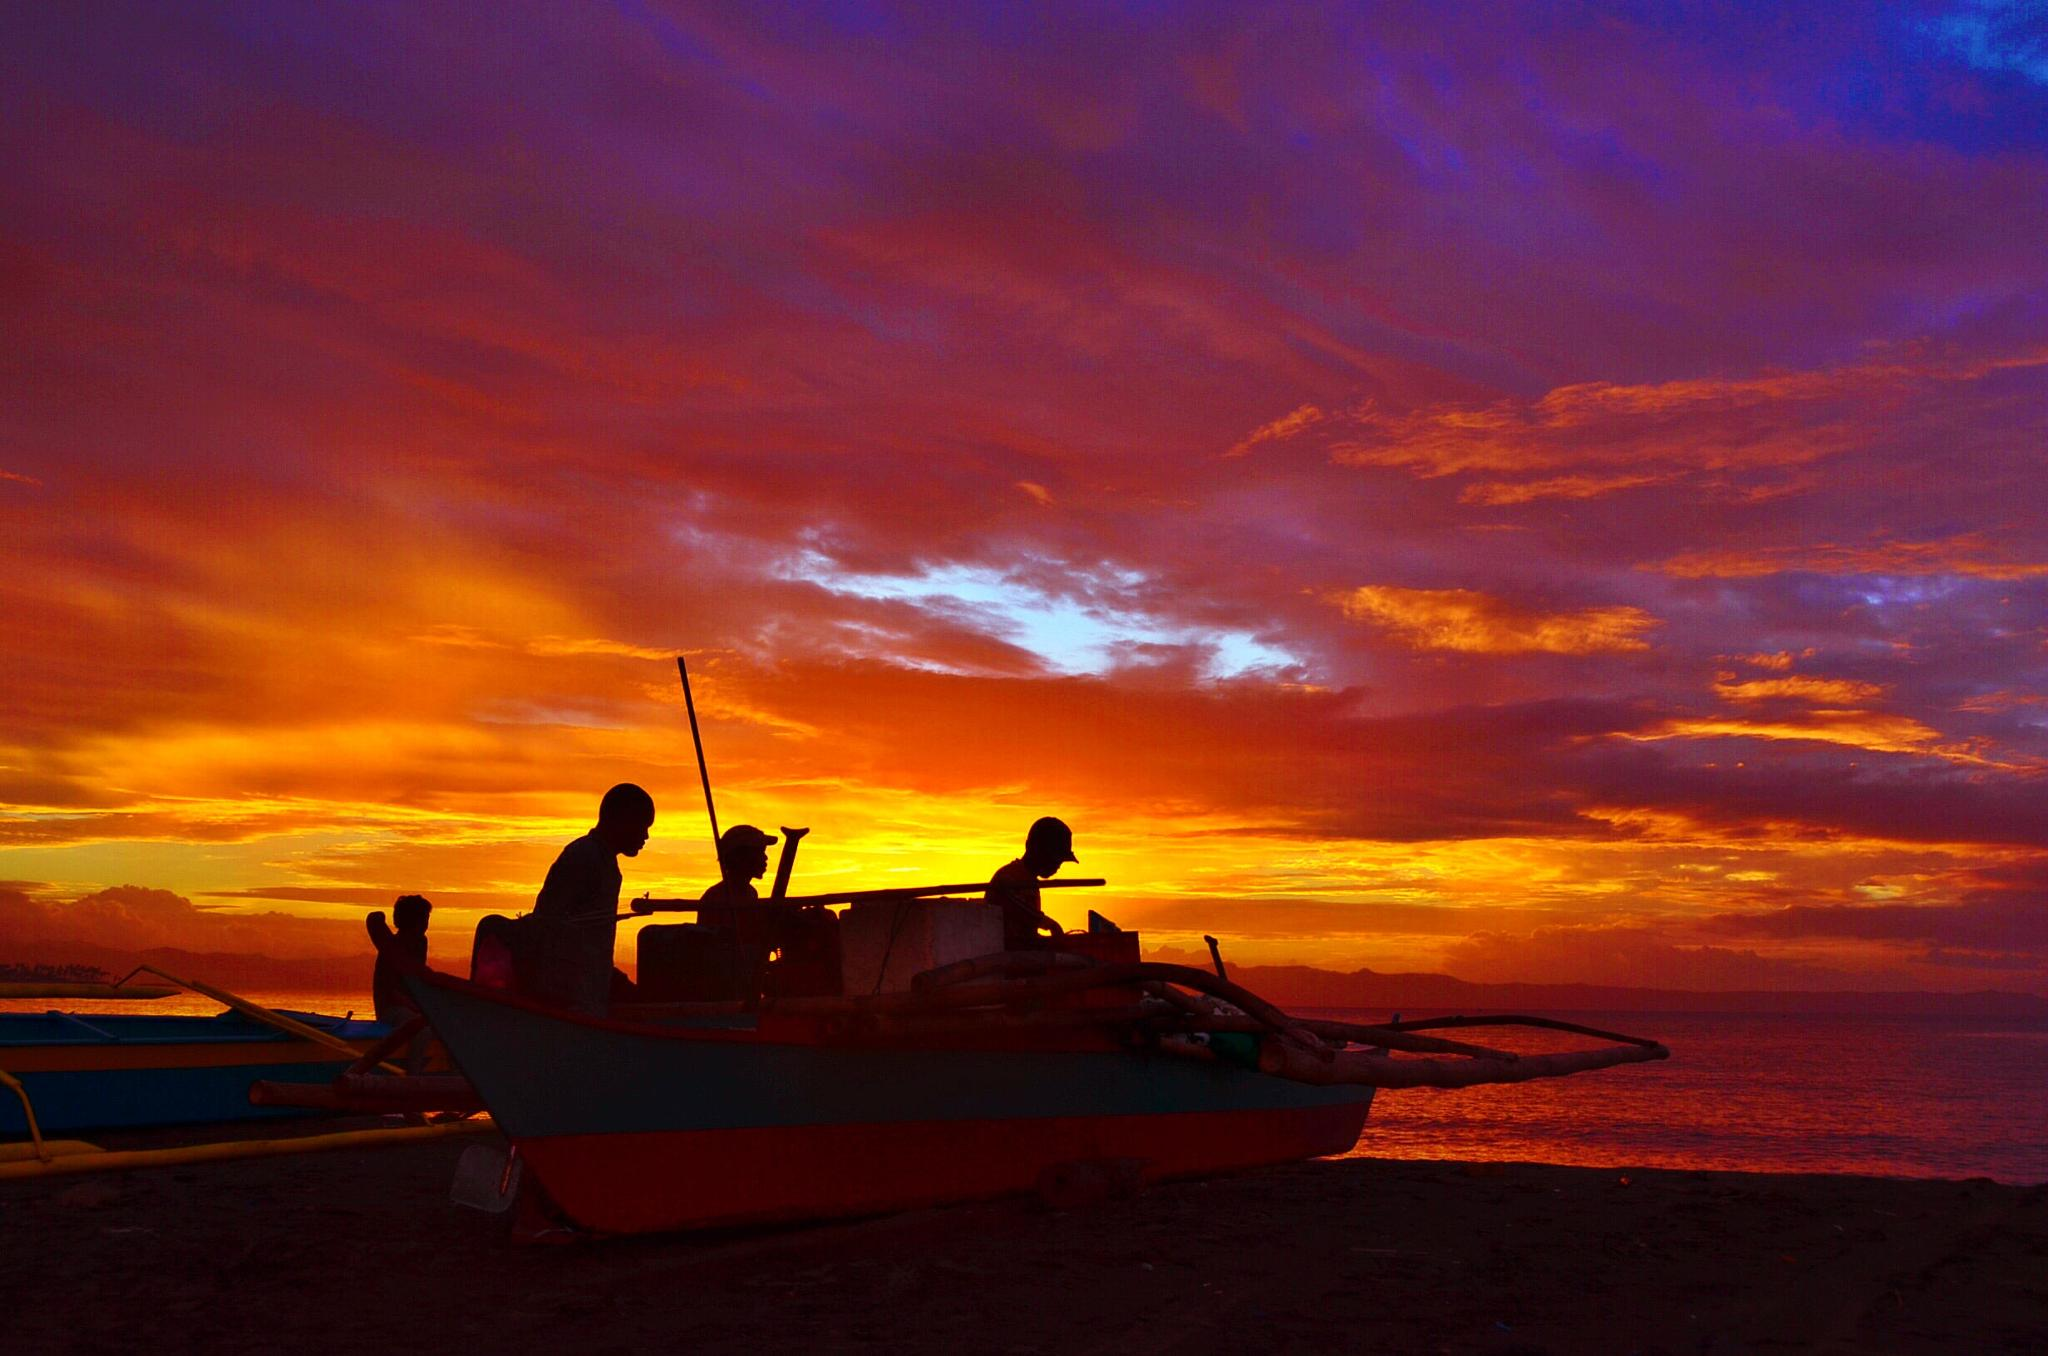 A day in the life of a fisherman by virtel2